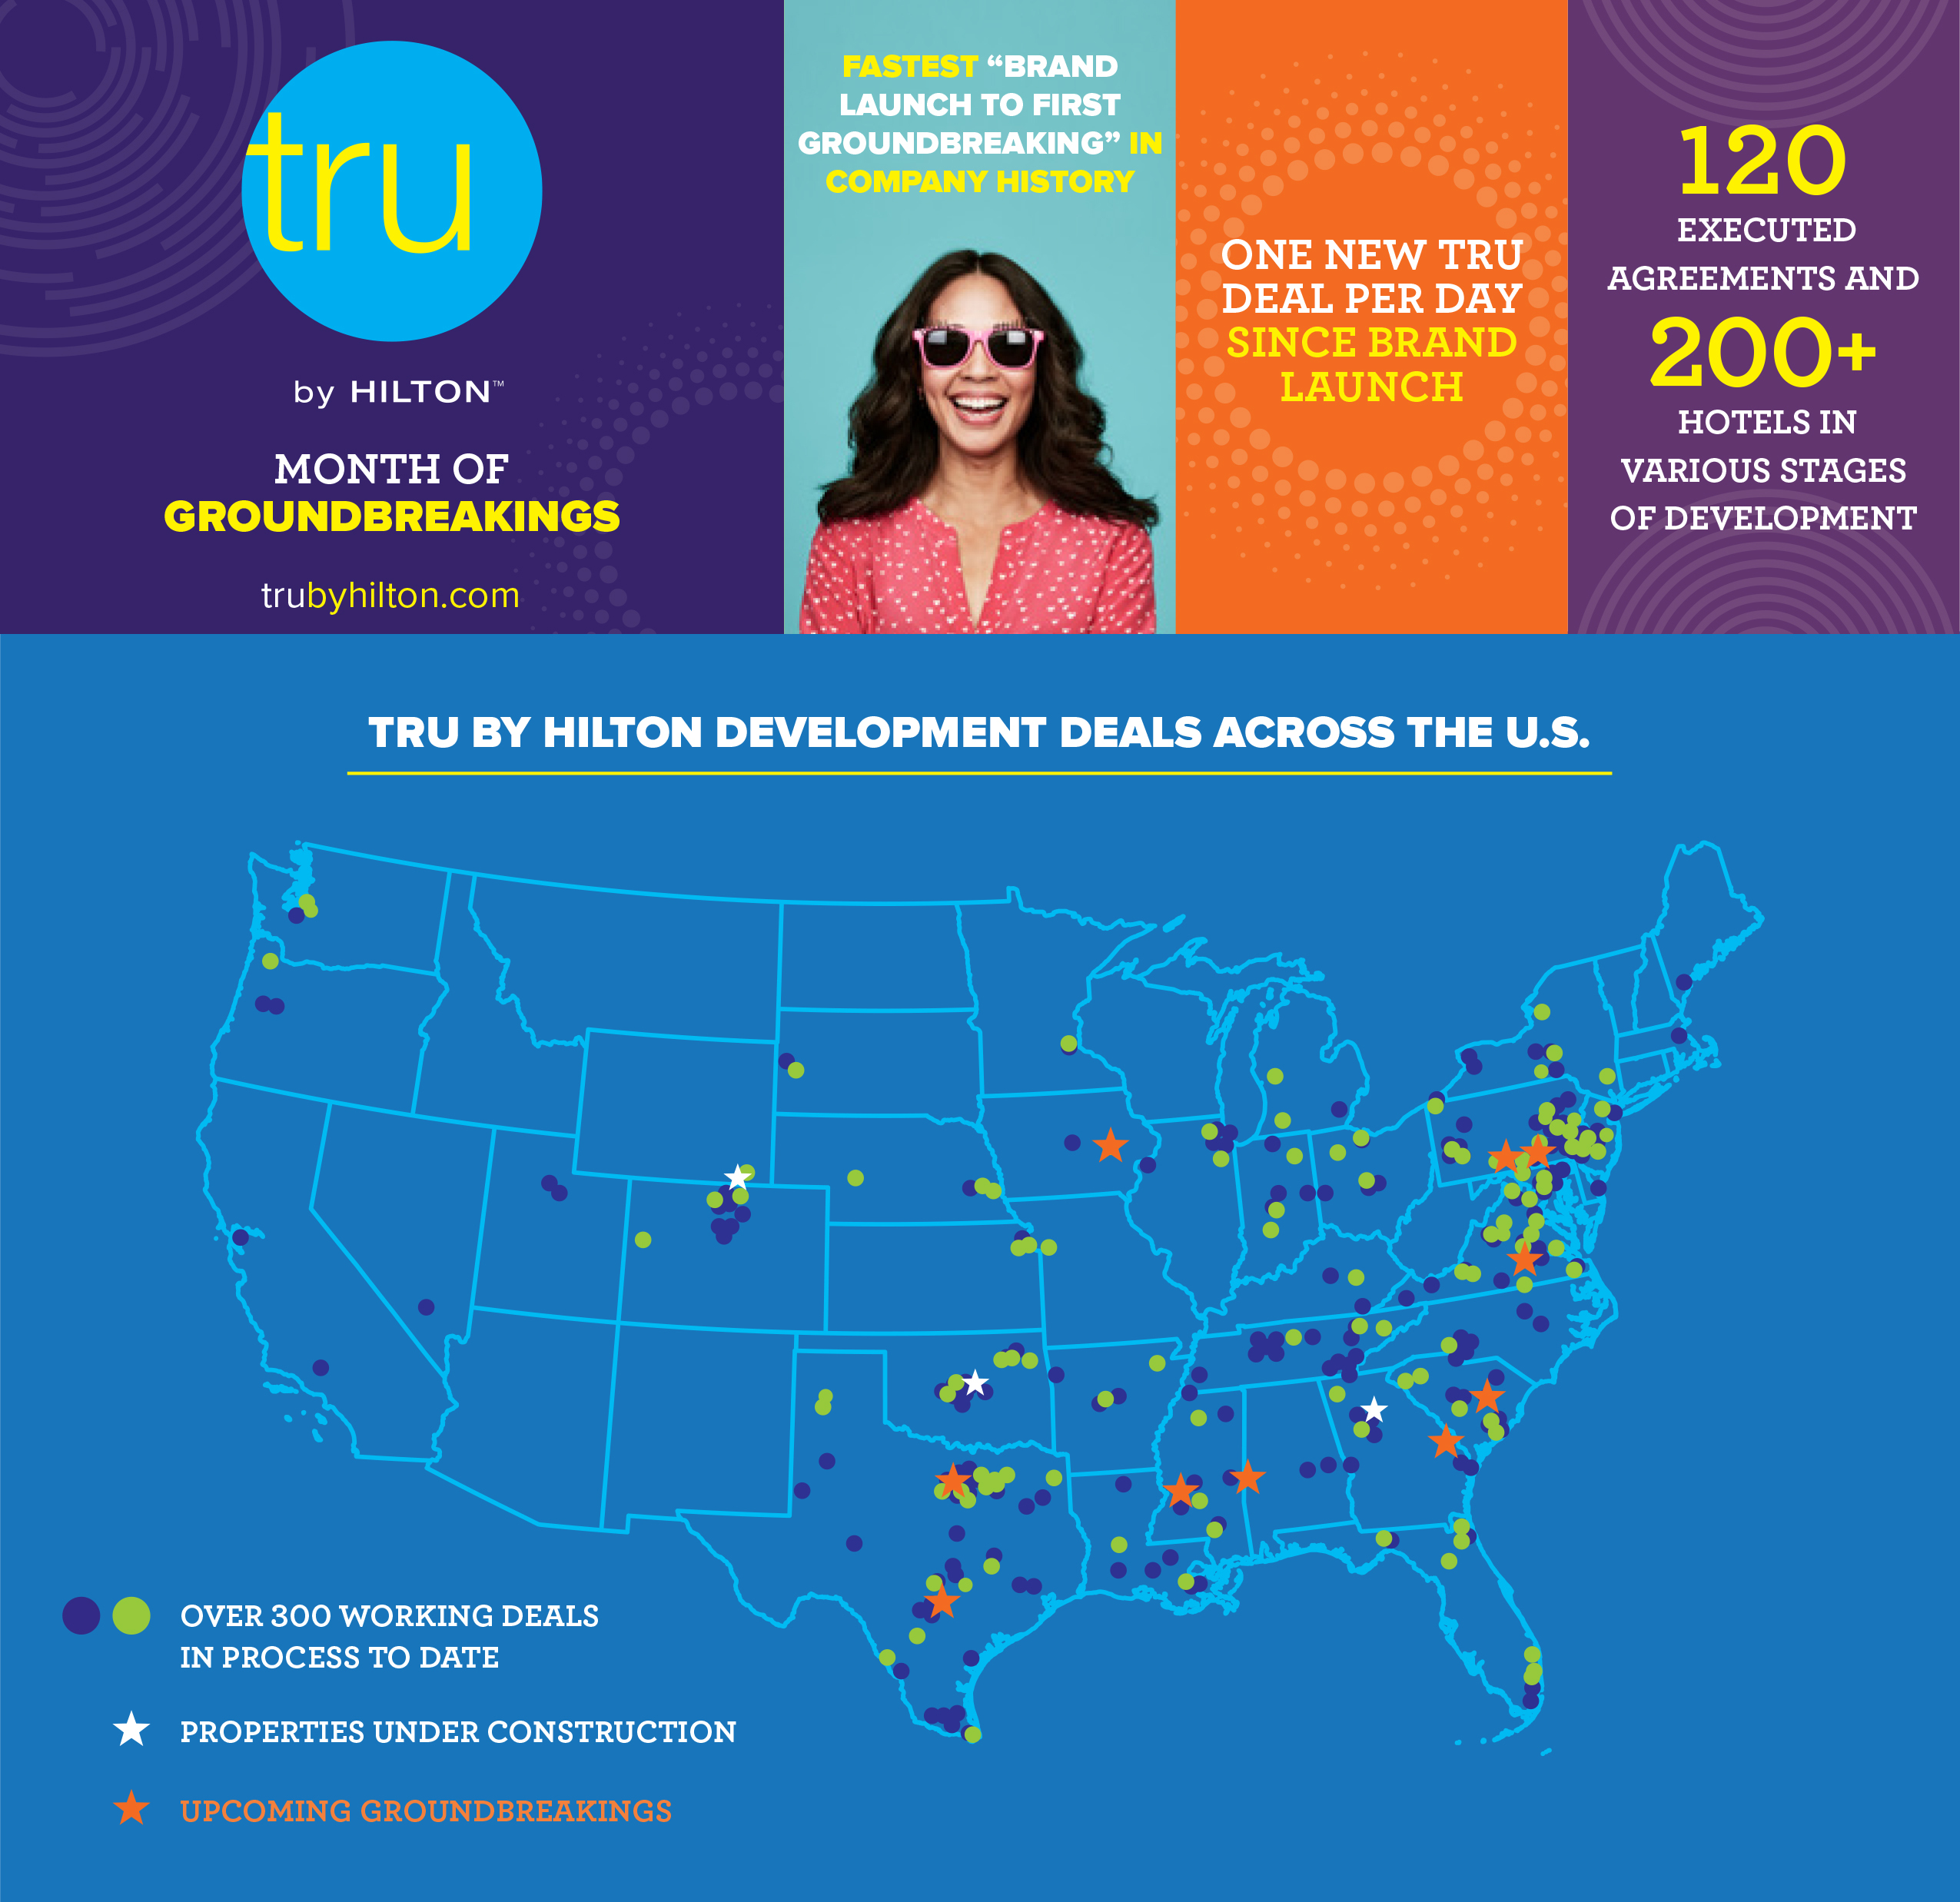 Tru by Hilton Announces Month of Groundbreaking Celebrations